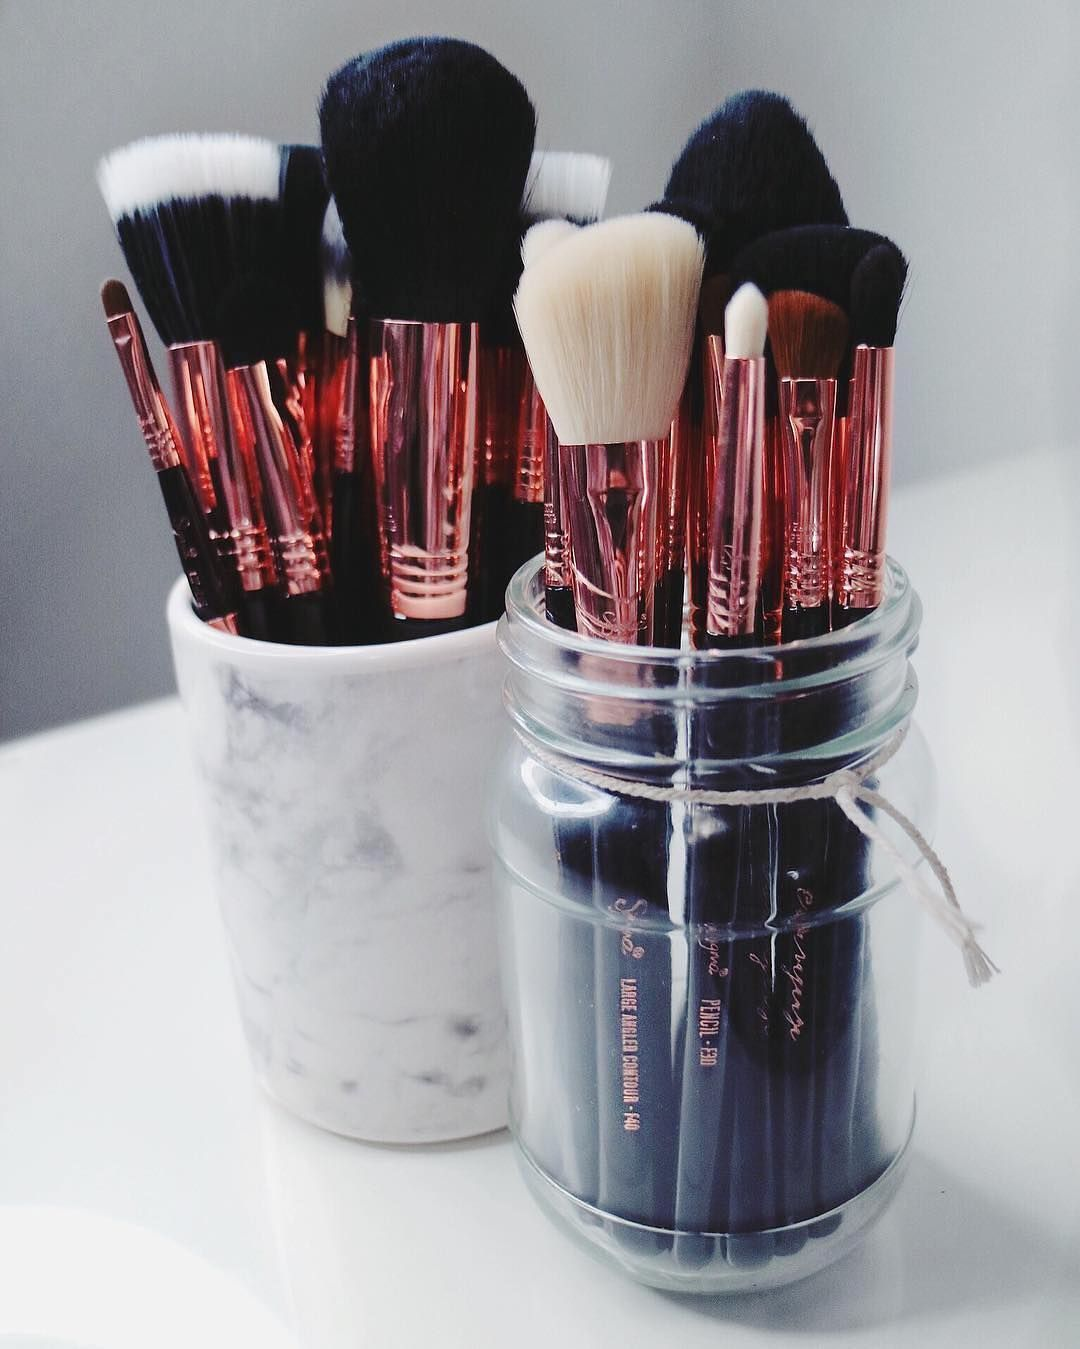 The Best Ways To Clean Your Makeup Brushes